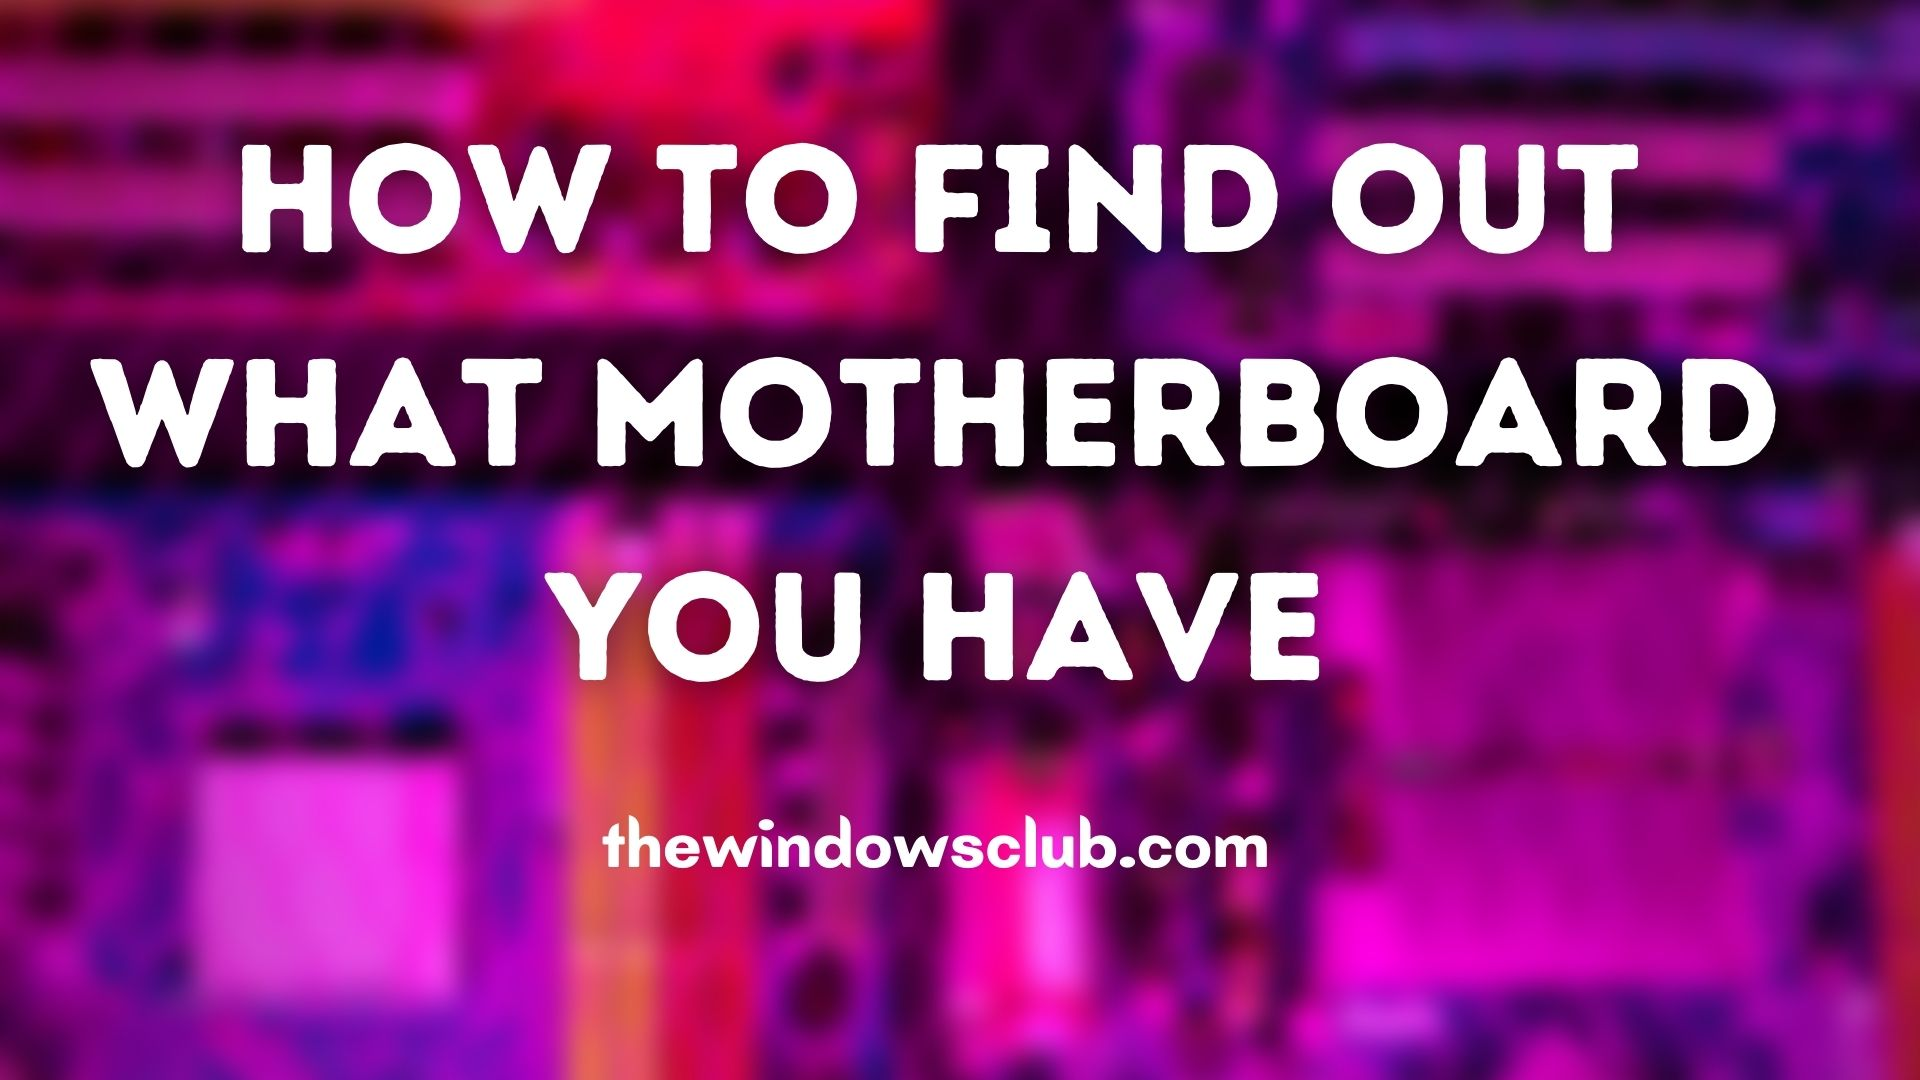 How to Find Out What Motherboard You Have